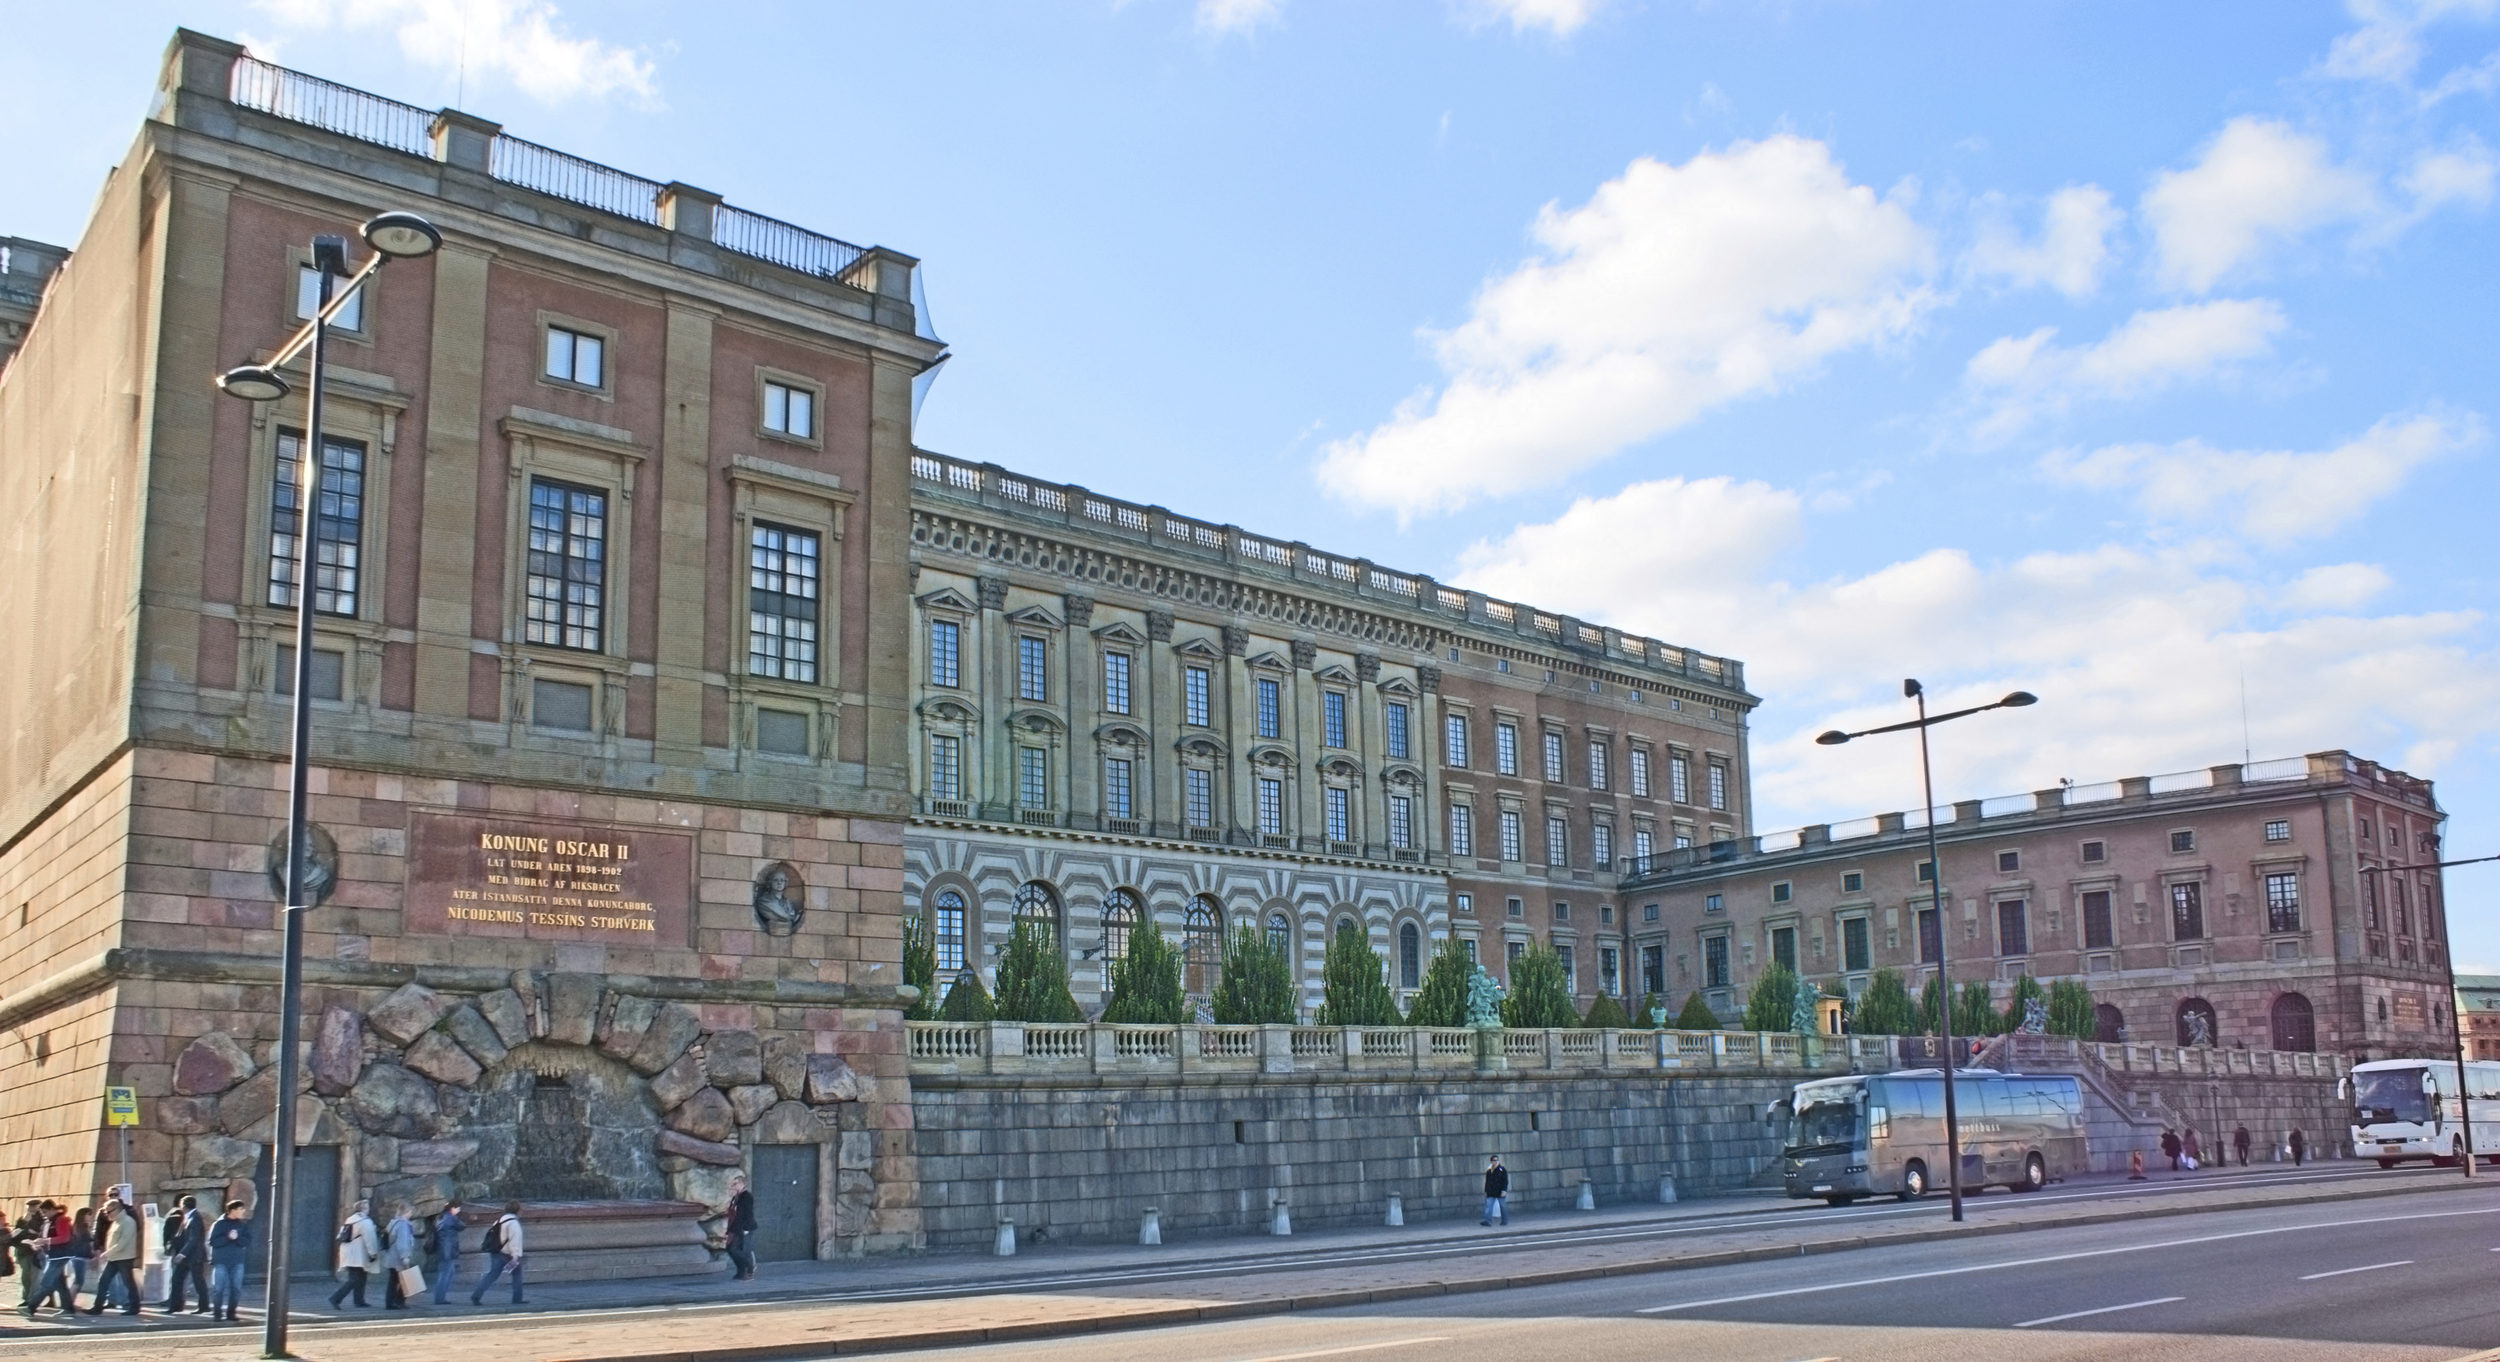 Stockholm Royal Palace is just around the corner.